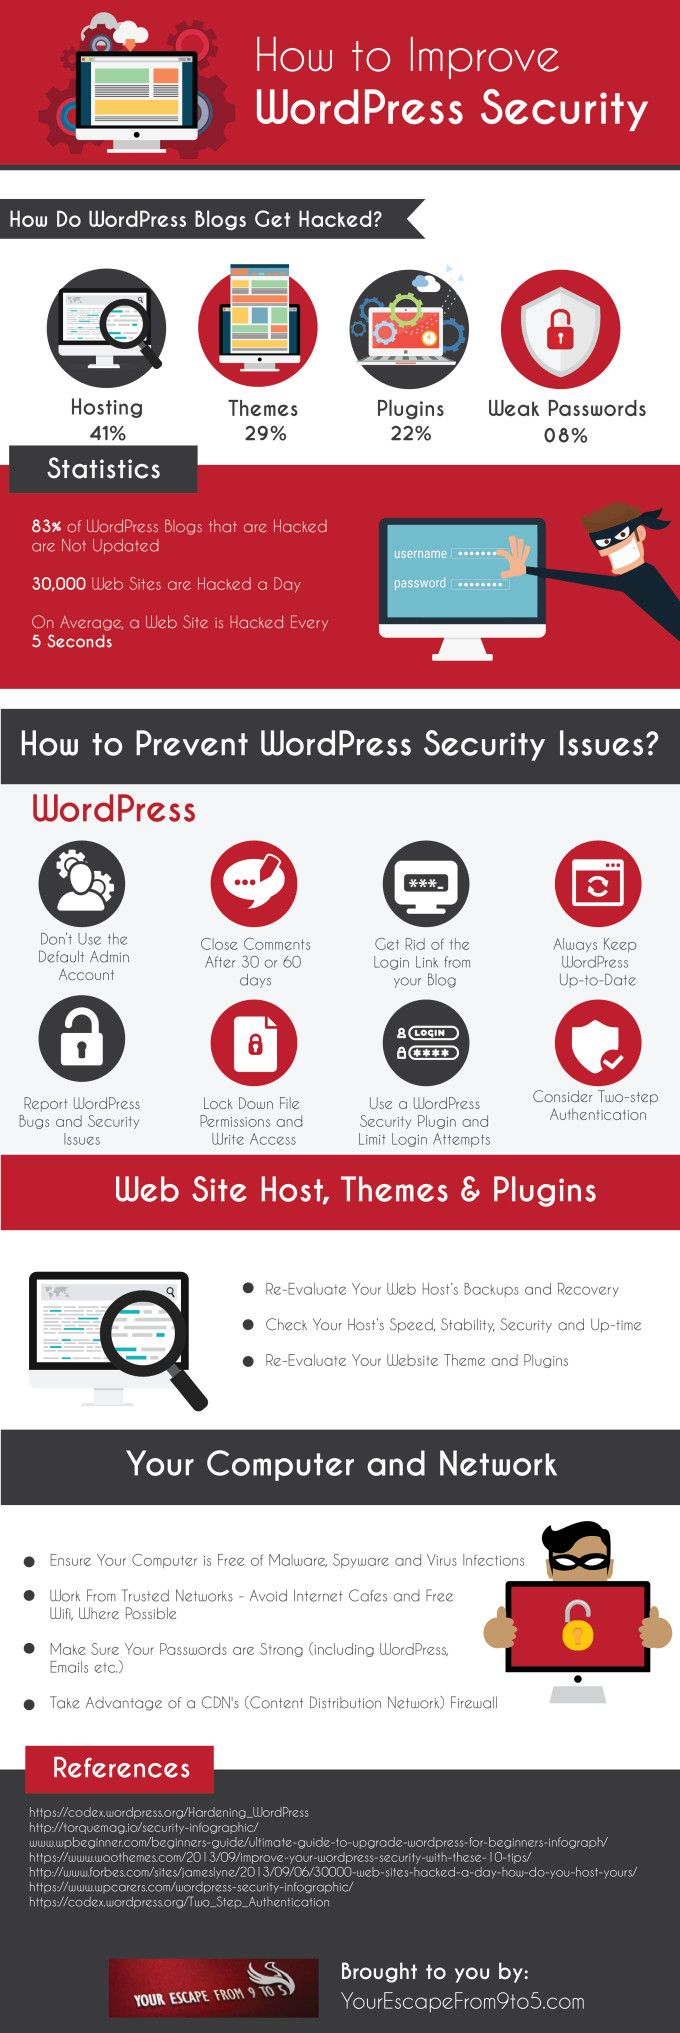 Wordpress is one of the most popular website managing services, with good reason - we use it! WordPress comes with plenty of security options, but going the extra mile never hurts. Check out today's infographic and keep your data safe.